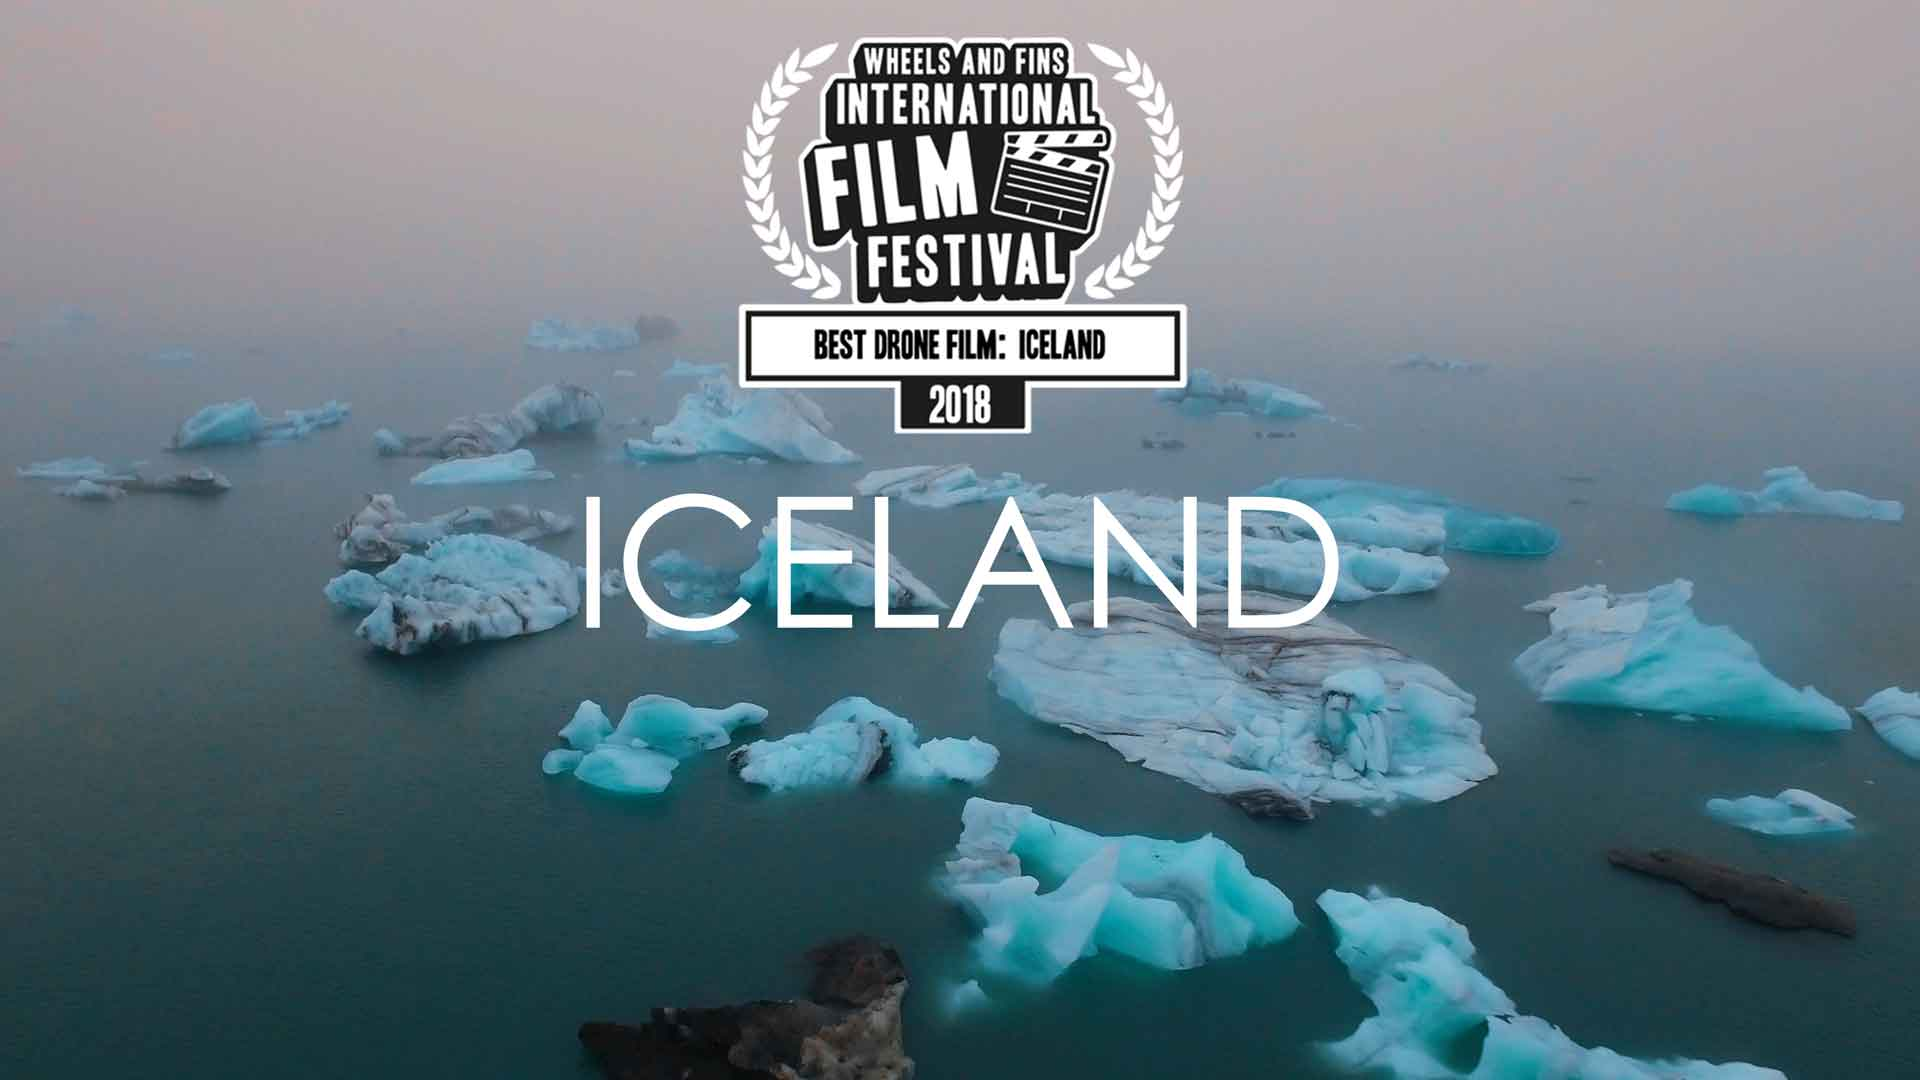 iceland-drone-images-western-australia-perth-winning-photography-cineatography-vdeio-film